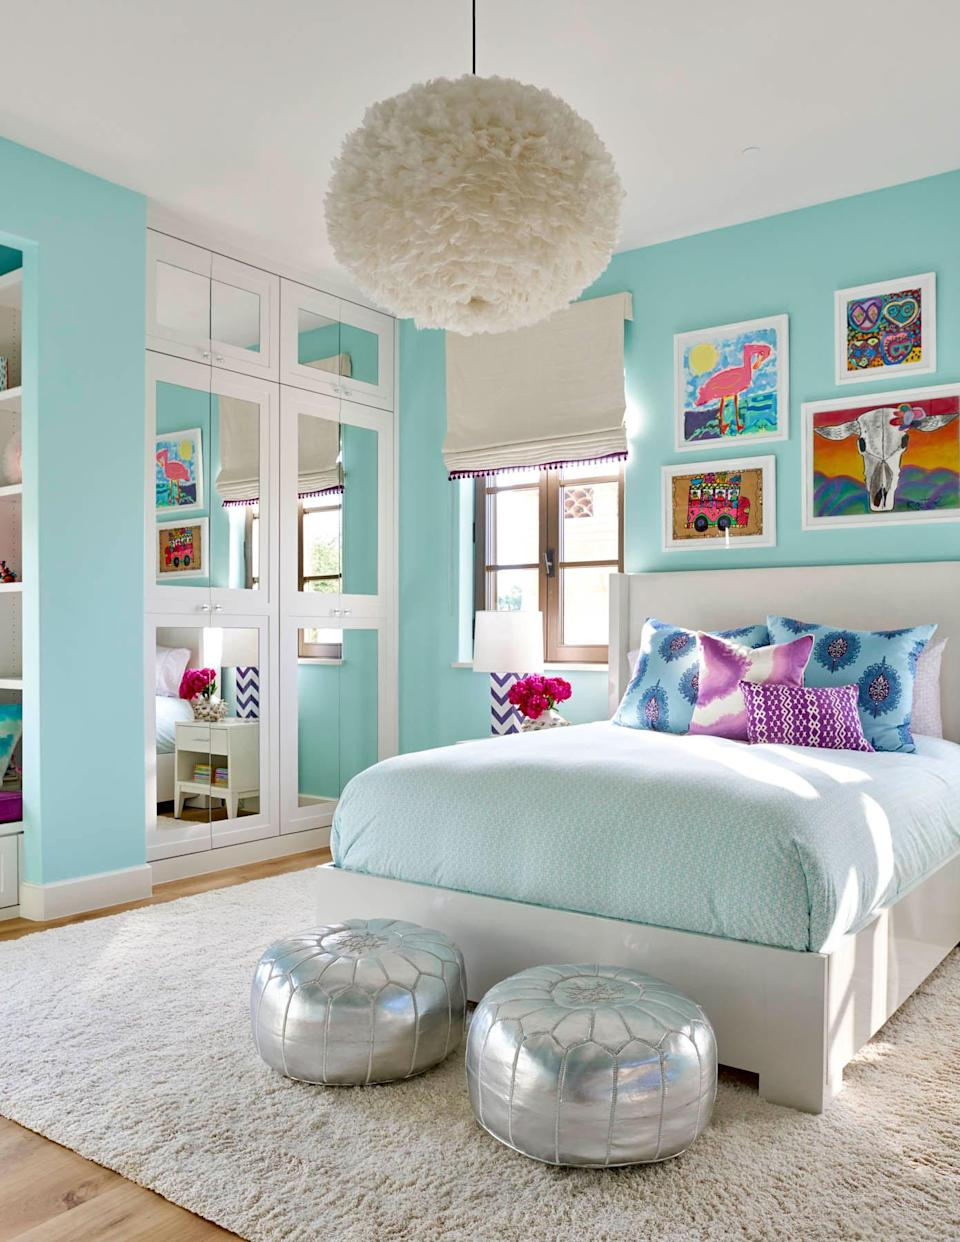 """<p>Morgan Farrow, Principal Designer of <a href=""""http://www.morganfarrow.com"""" rel=""""nofollow noopener"""" target=""""_blank"""" data-ylk=""""slk:Morgan Farrow Interiors"""" class=""""link rapid-noclick-resp"""">Morgan Farrow Interiors</a> in Dallas, says <a href=""""https://www.sherwin-williams.com/homeowners/color/find-and-explore-colors/paint-colors-by-family/SW6484-meander-blue"""" rel=""""nofollow noopener"""" target=""""_blank"""" data-ylk=""""slk:Meander Blue"""" class=""""link rapid-noclick-resp"""">Meander Blue</a> by Sherwin Williams works wonders for children's rooms. """"This aqua tone was the perfect paint selection for this girl's room and really added an extra layer of excitement and personality,"""" she says. """" When designing a small space, I think color selection can completely transform the overall feel. This bedroom now feels larger and provides a joyful place to grow.""""</p>"""